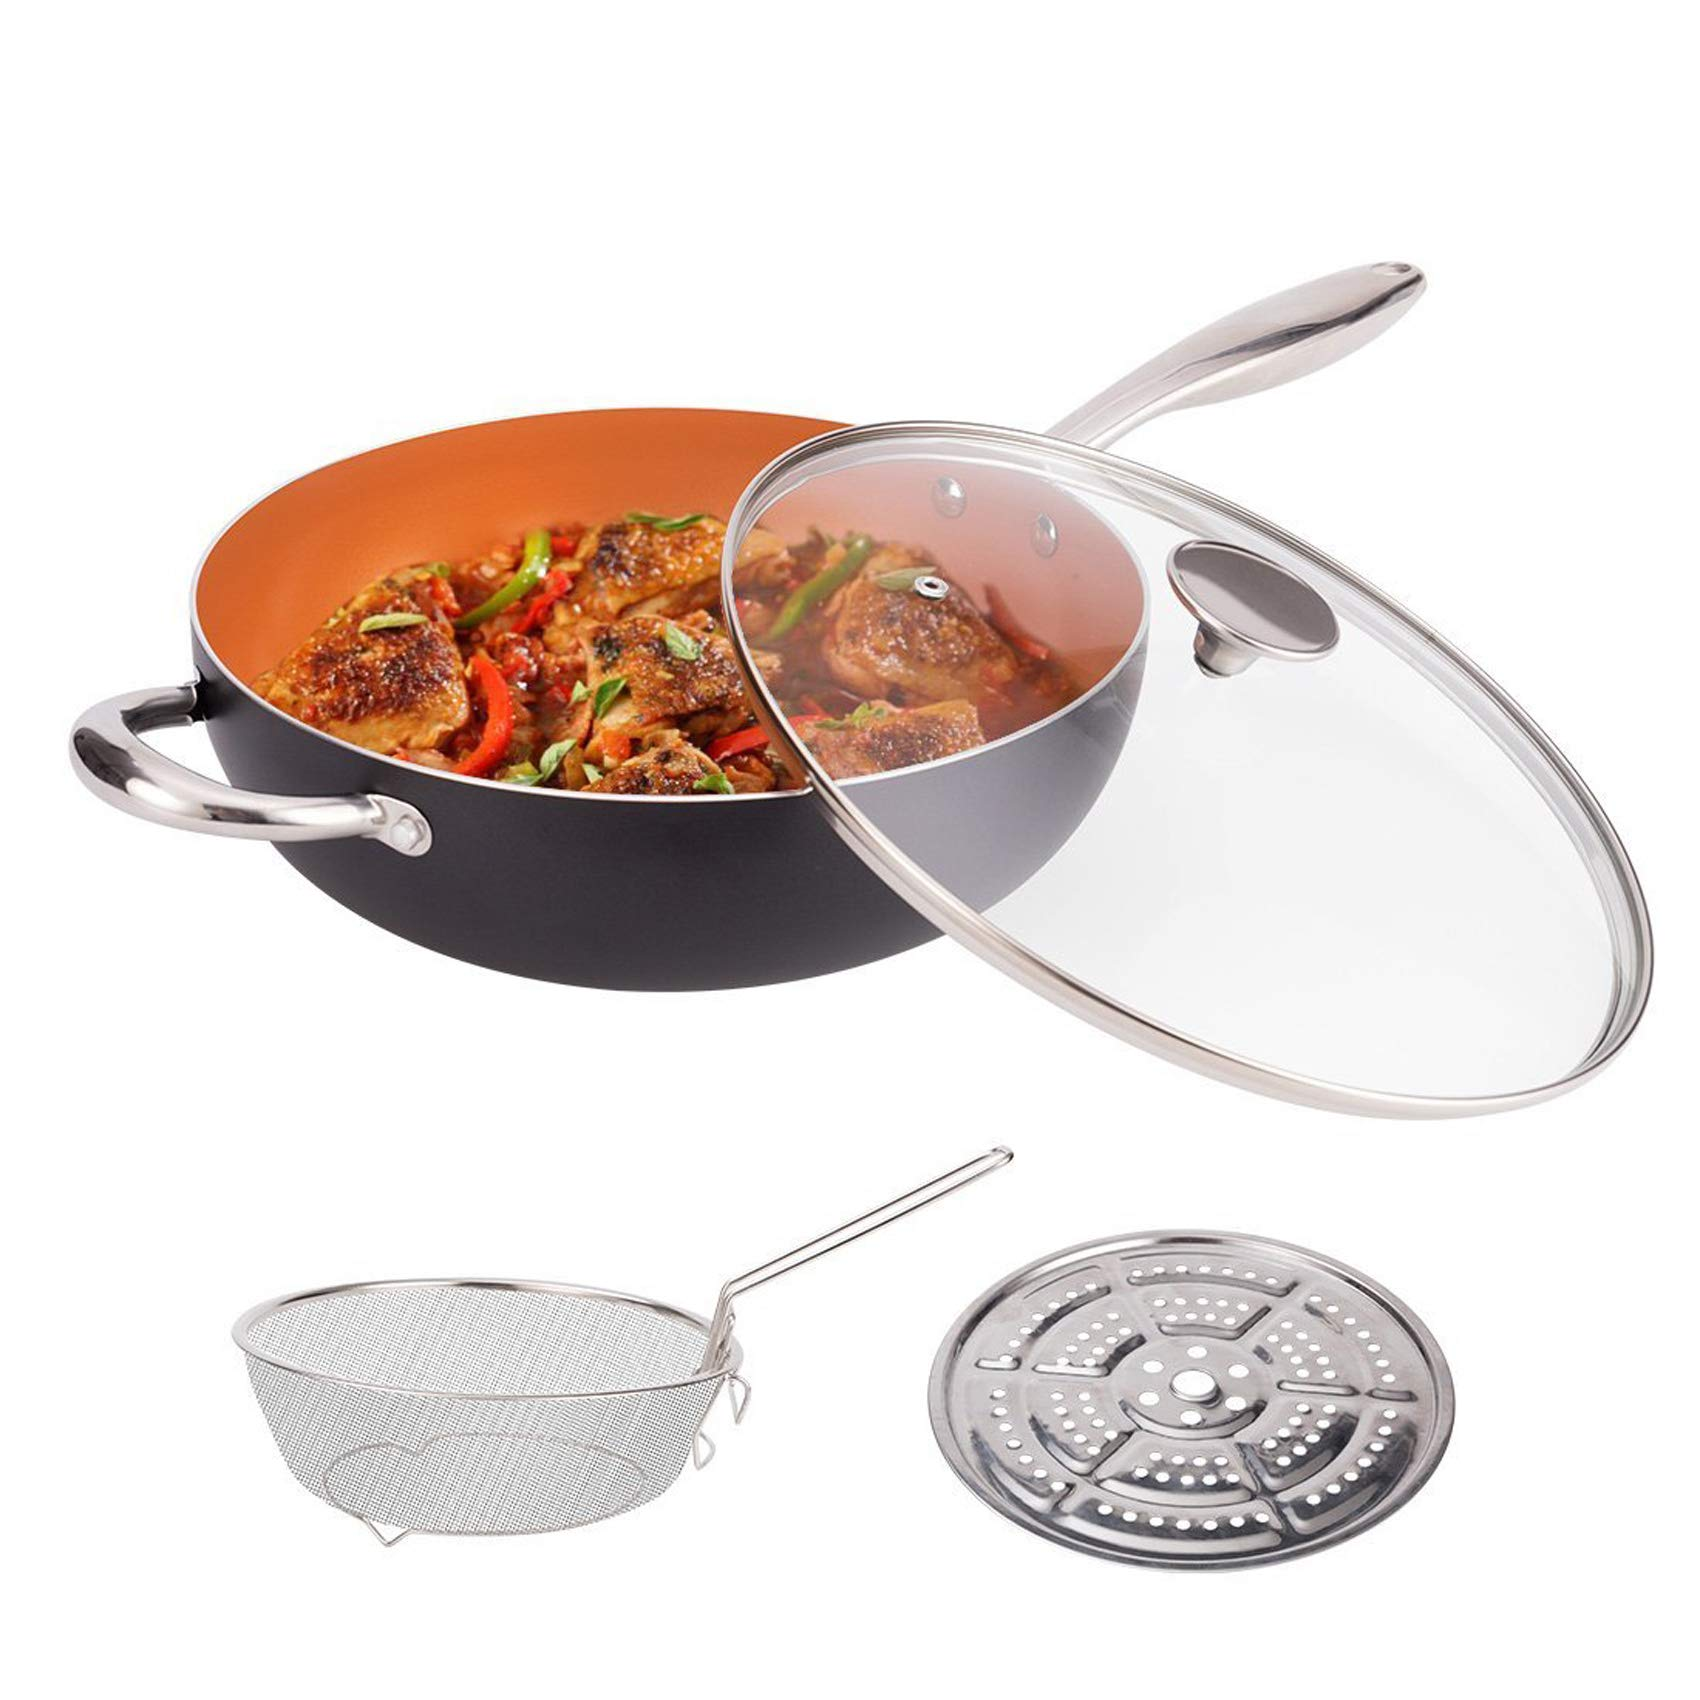 MICHELANGELO 5 Quart Nonstick Woks and Stir Fry Pans With Lid, Frying Basket & Steam Rack, Nonstick Copper Wok Pan With Lid, Ceramic Wok With Lid, Nonstick Frying Wok Flat Bottom, Induction Compatible